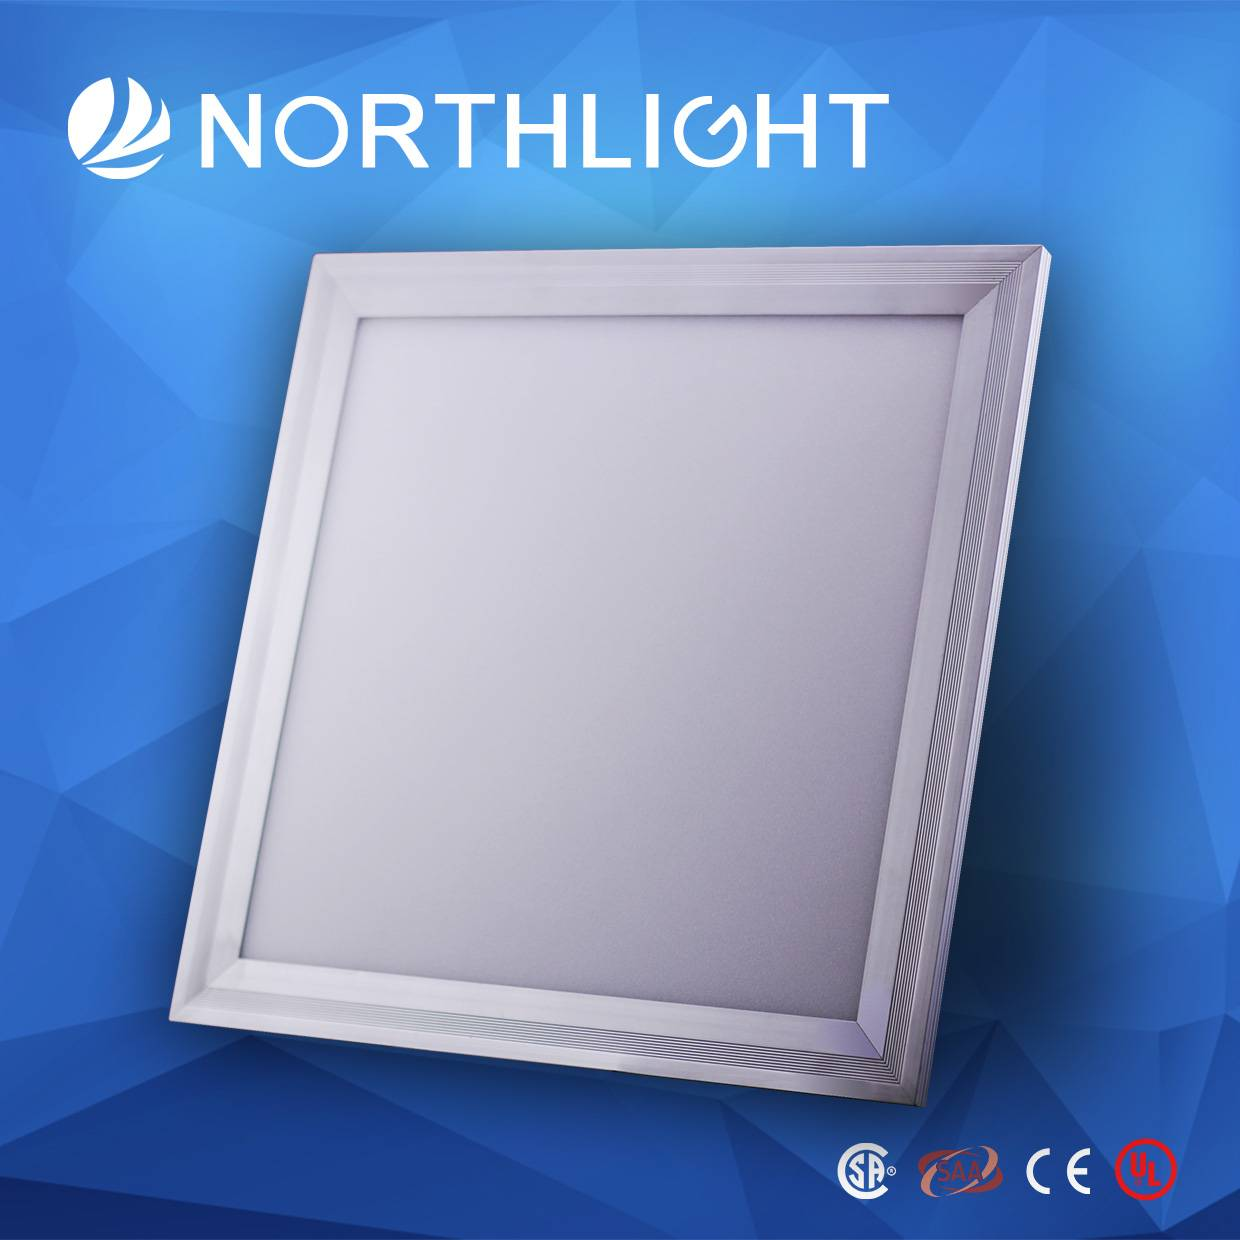 AC85-265V 40W 600*600 Panel LED Office Lighting